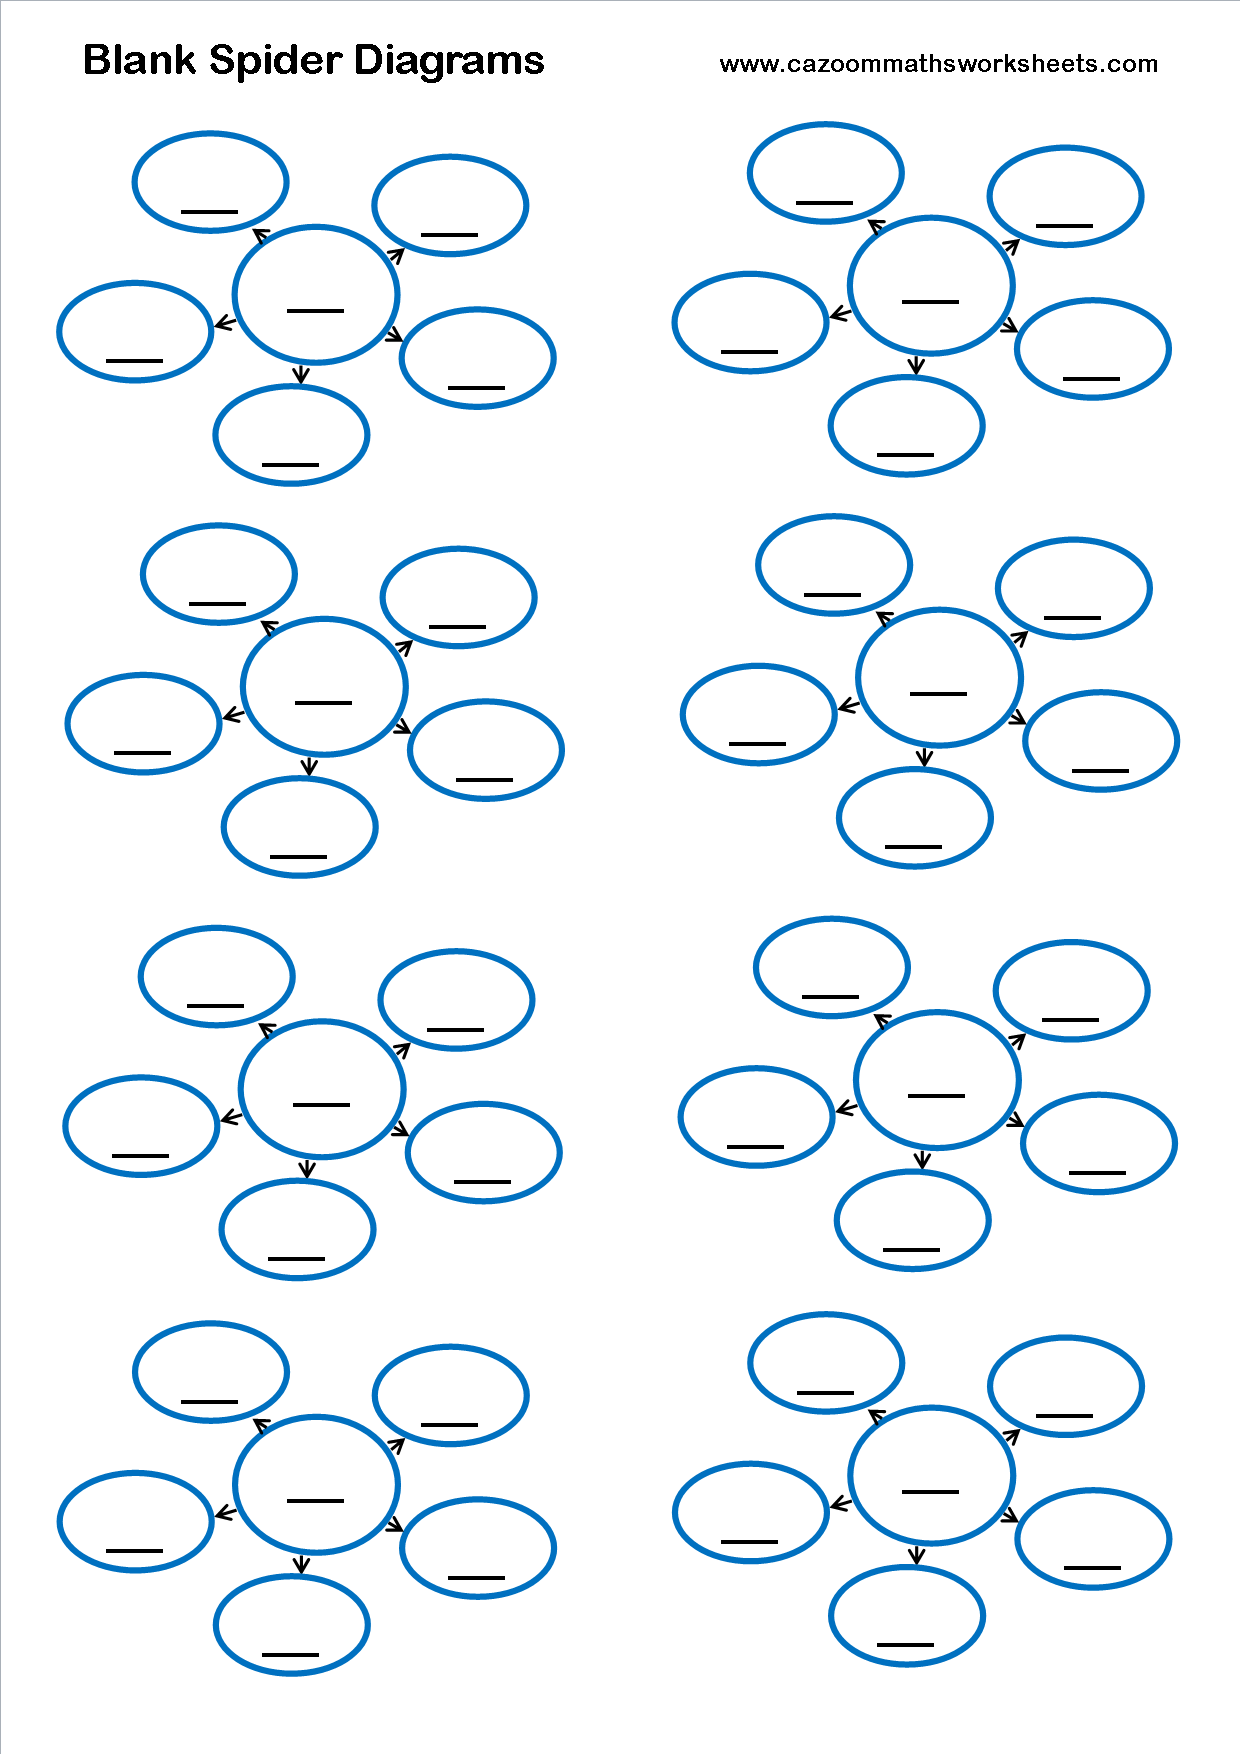 Blank Spider Diagrams